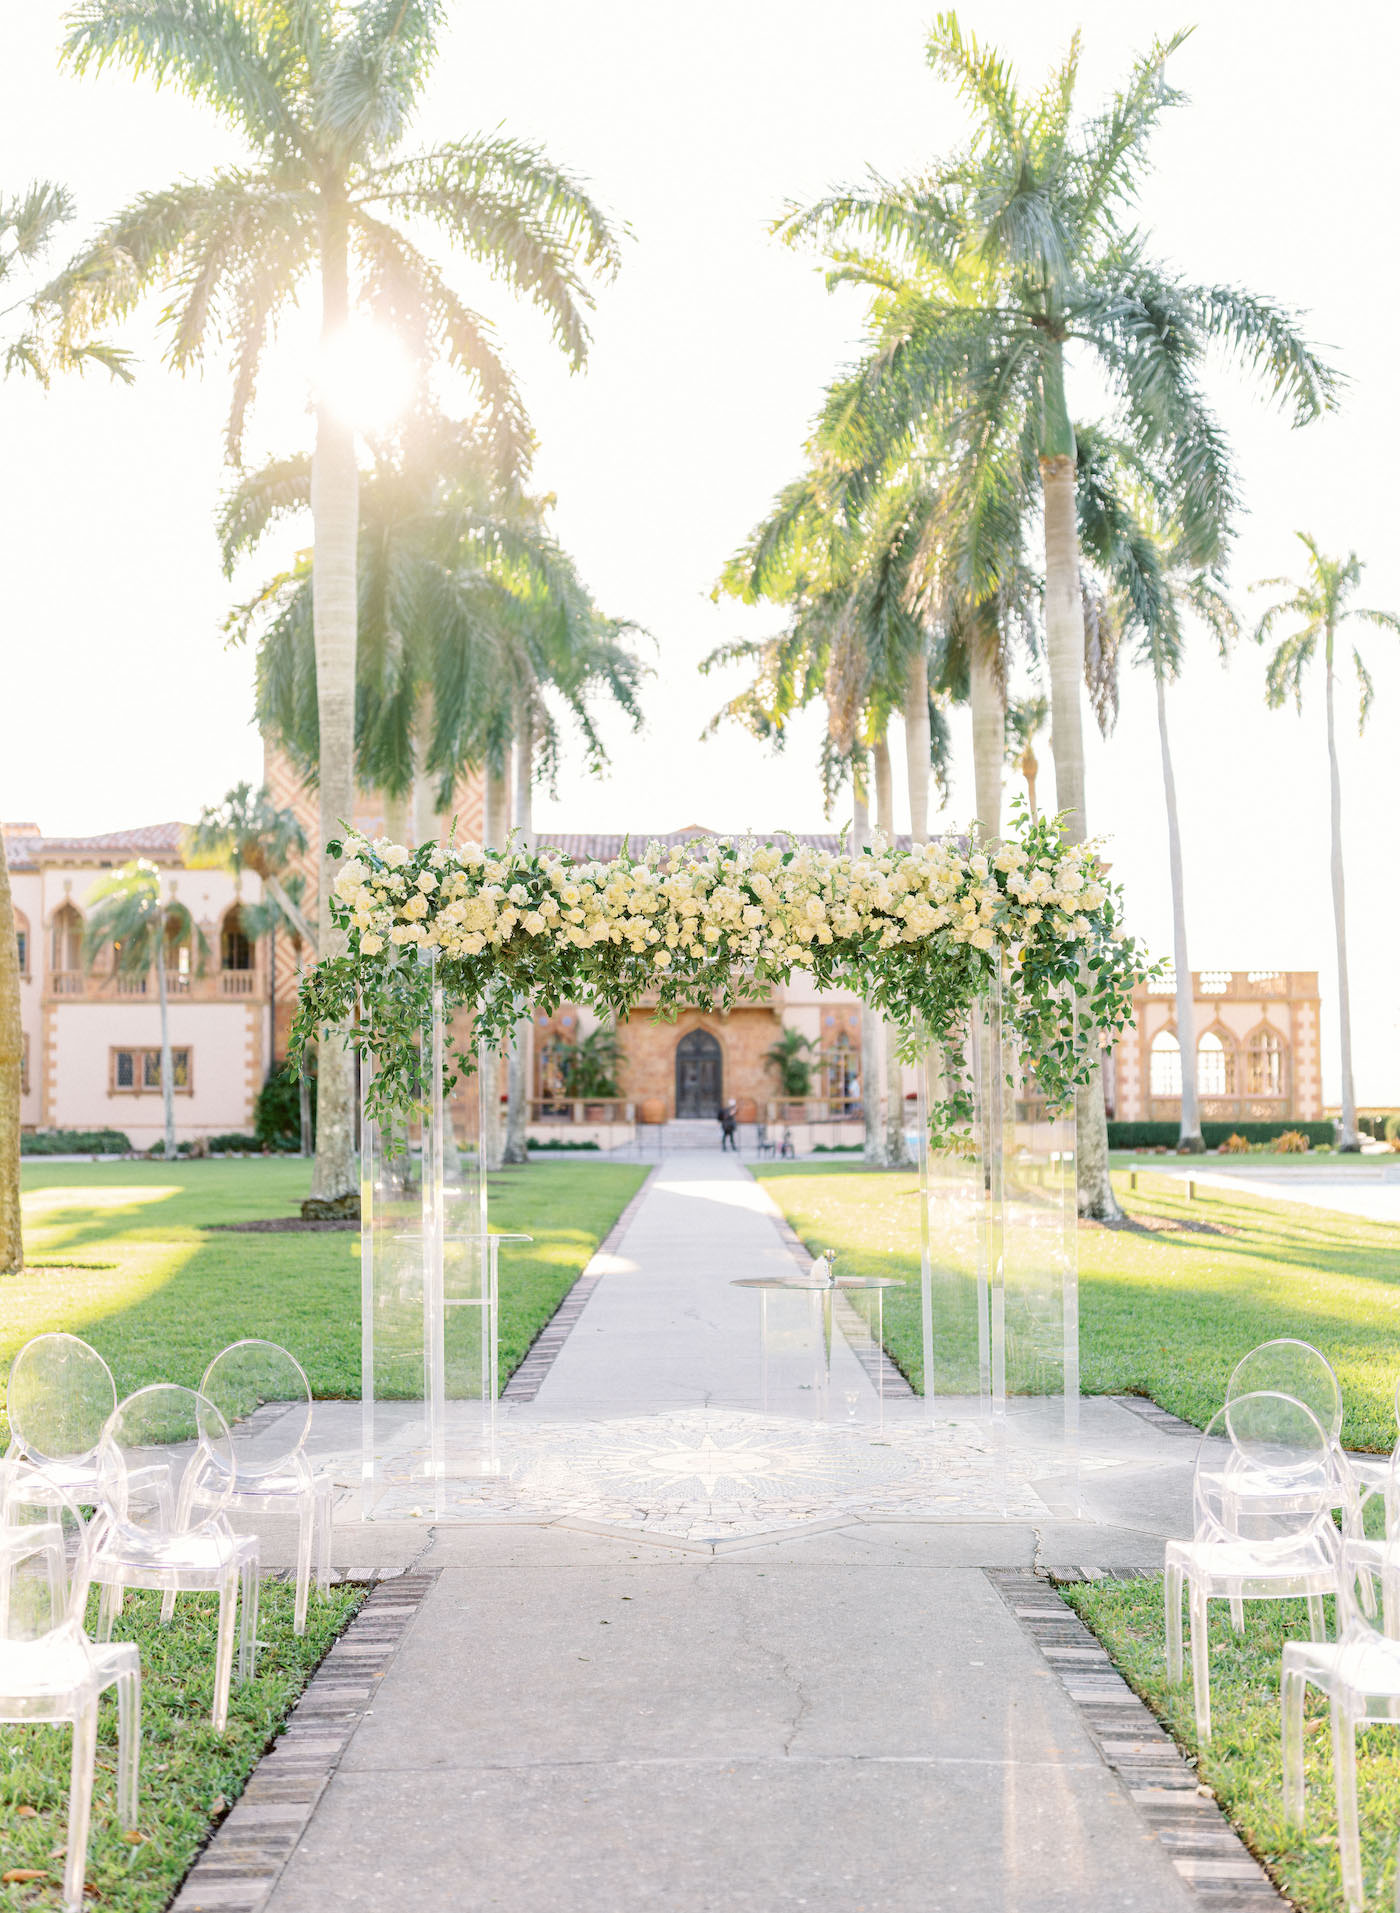 Romantic, Modern Florida Outdoor Wedding Ceremony with Jewish Wedding Altar, Ghost Chairs, Clear Acrylic Chuppah with Lush Ivory Floral Bouquets and Greenery, In Courtyard of The Ringling Museum | Sarasota Wedding Planner NK Weddings